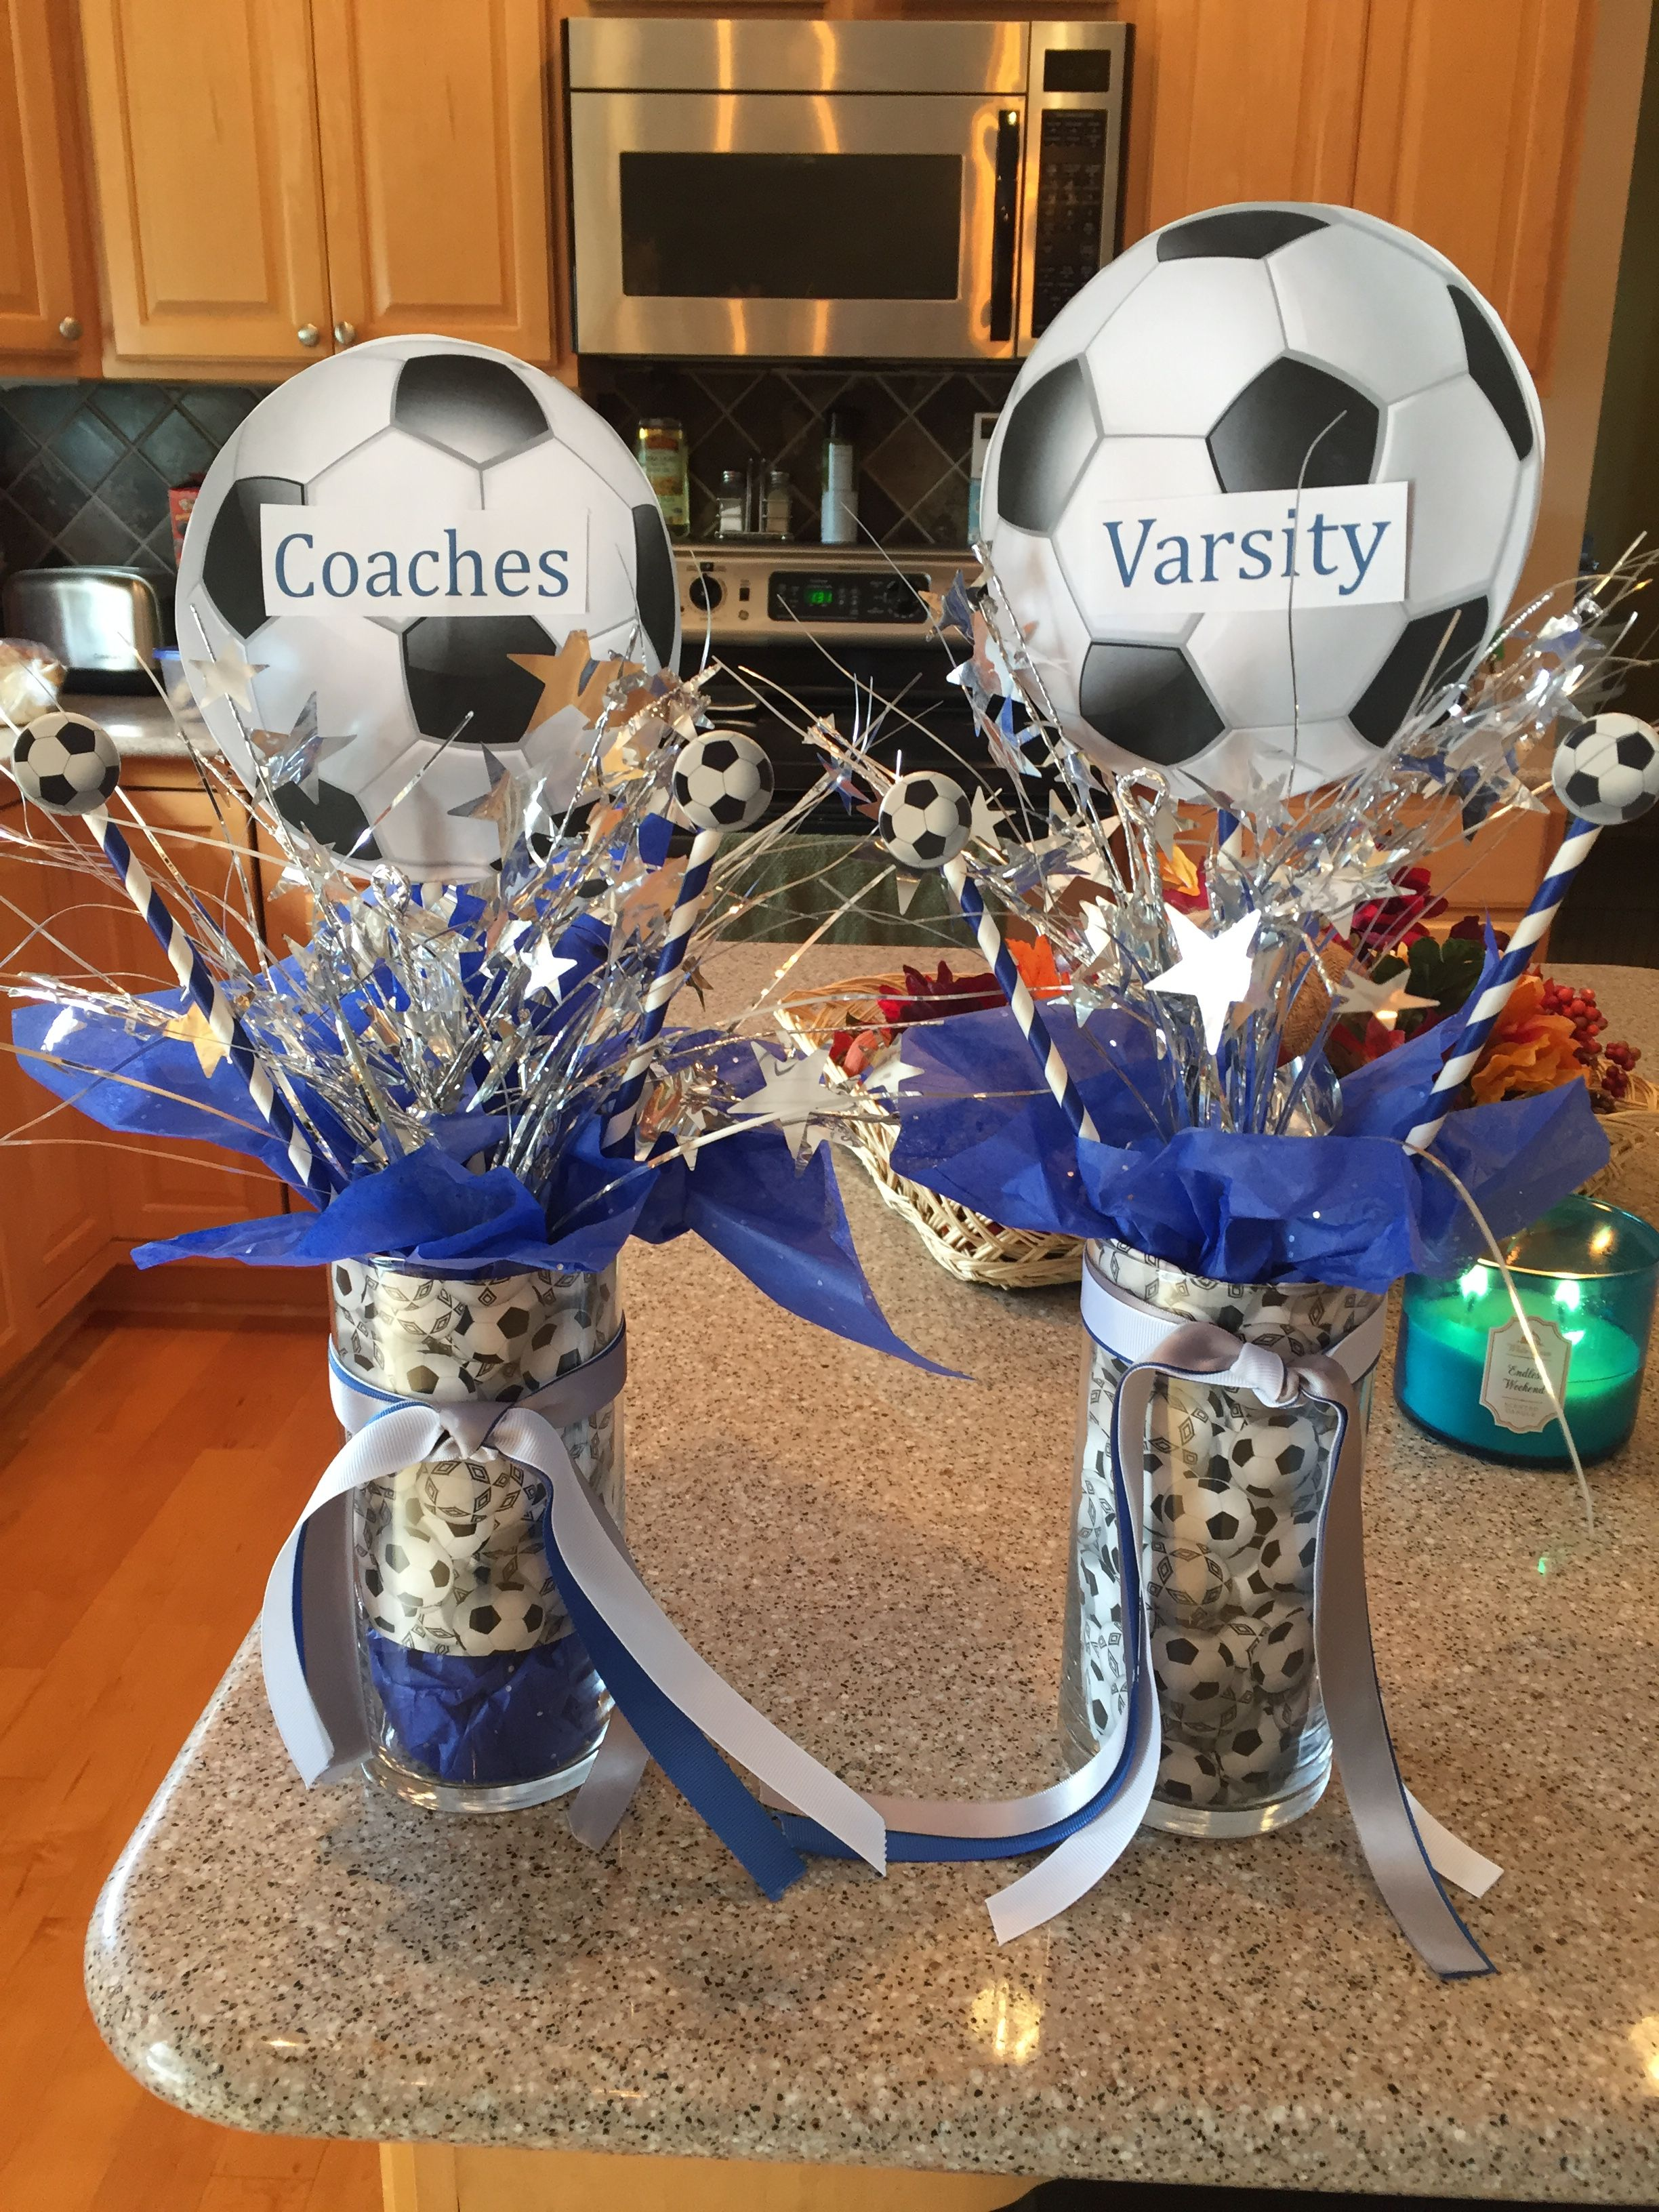 Gifts For Soccer Banquet Use Clear Plastic Vase Put Soccer Paper On The Inside Fill With Candy And Soccer Banquet Soccer Banquet Gifts Soccer Centerpieces